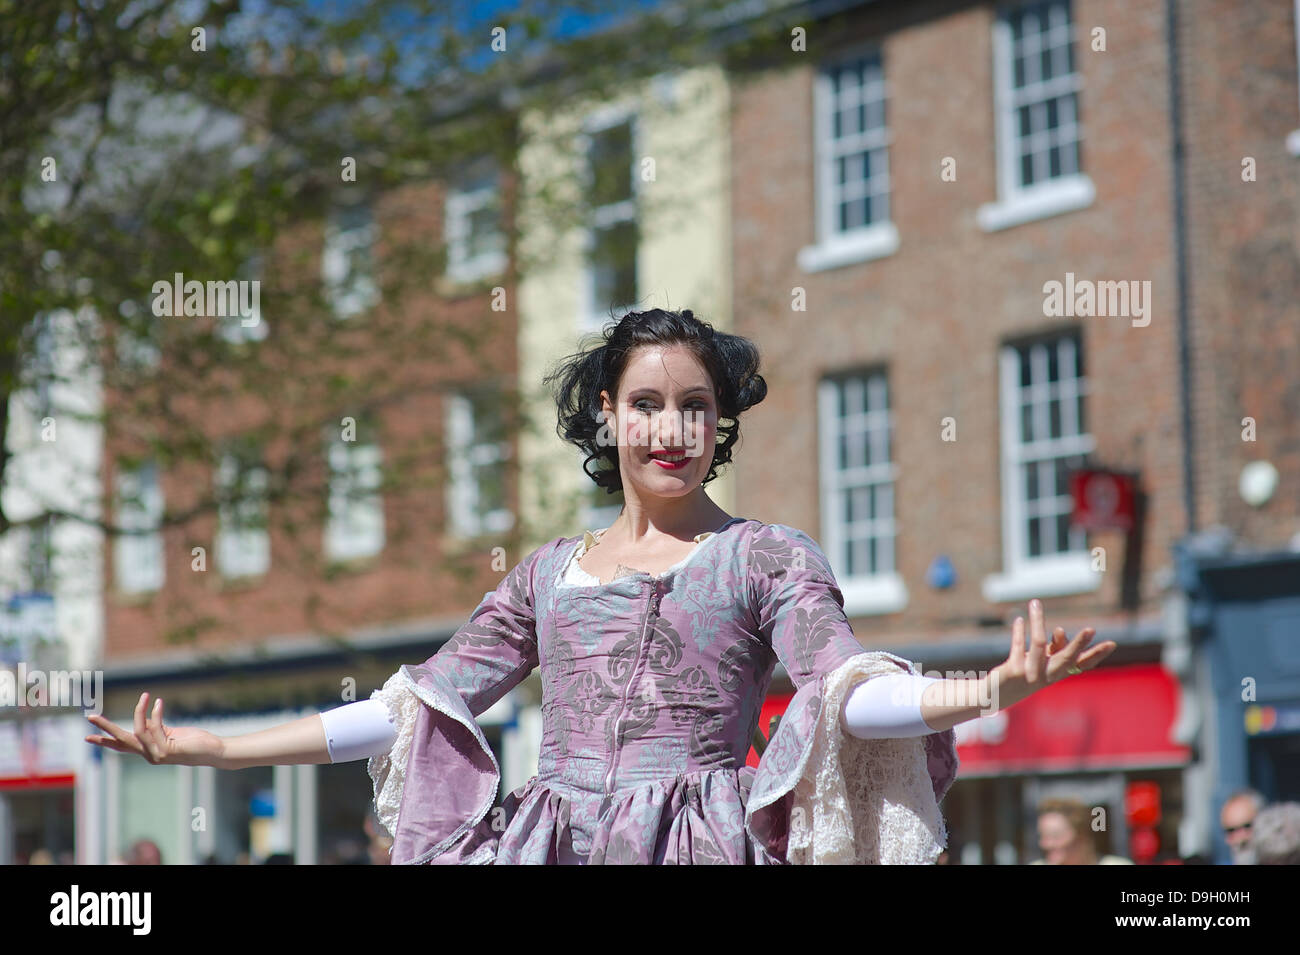 Kate Mior, a Canadian performance artist wows the York crowds with her clockwork dancer act. - Stock Image